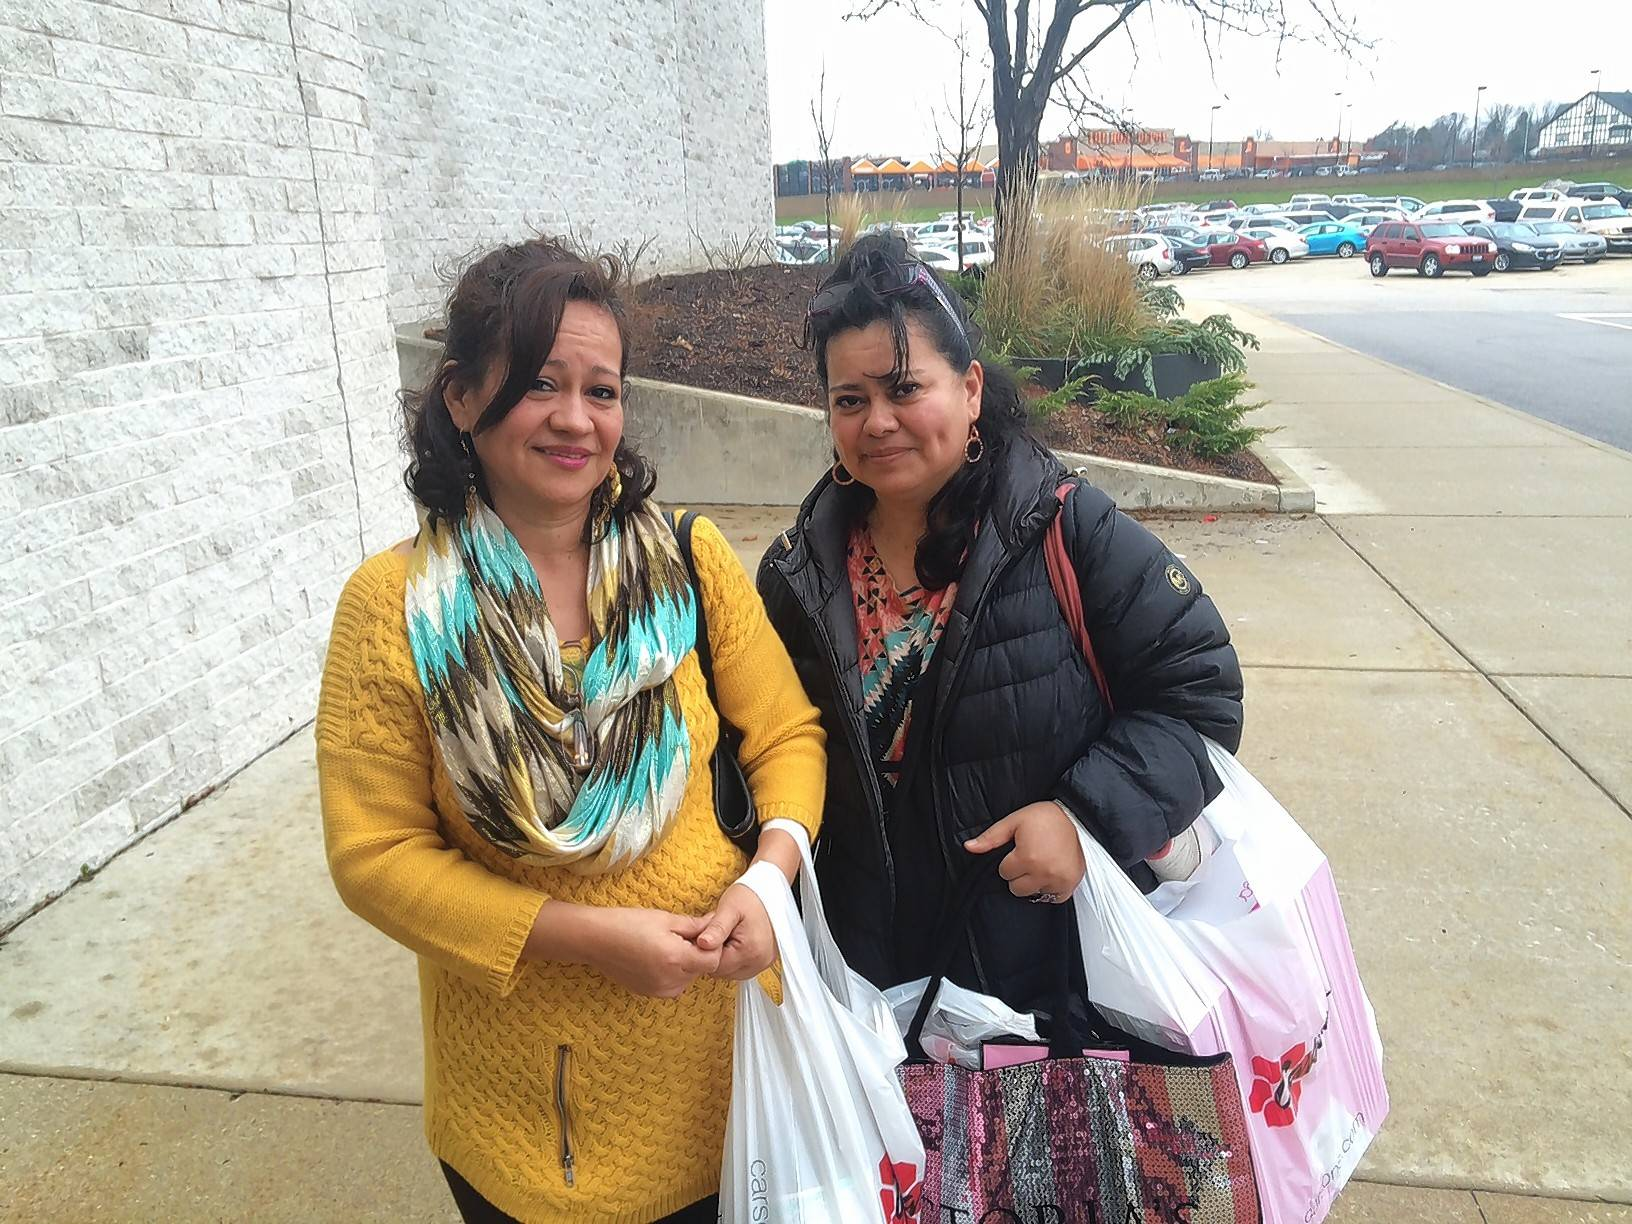 Imelda Zuniga of Algonquin, left, and her sister Cecilia Barbosa, of Detroit, Michigan, shopped Friday at Carson Pirie Scott in West Dundee.